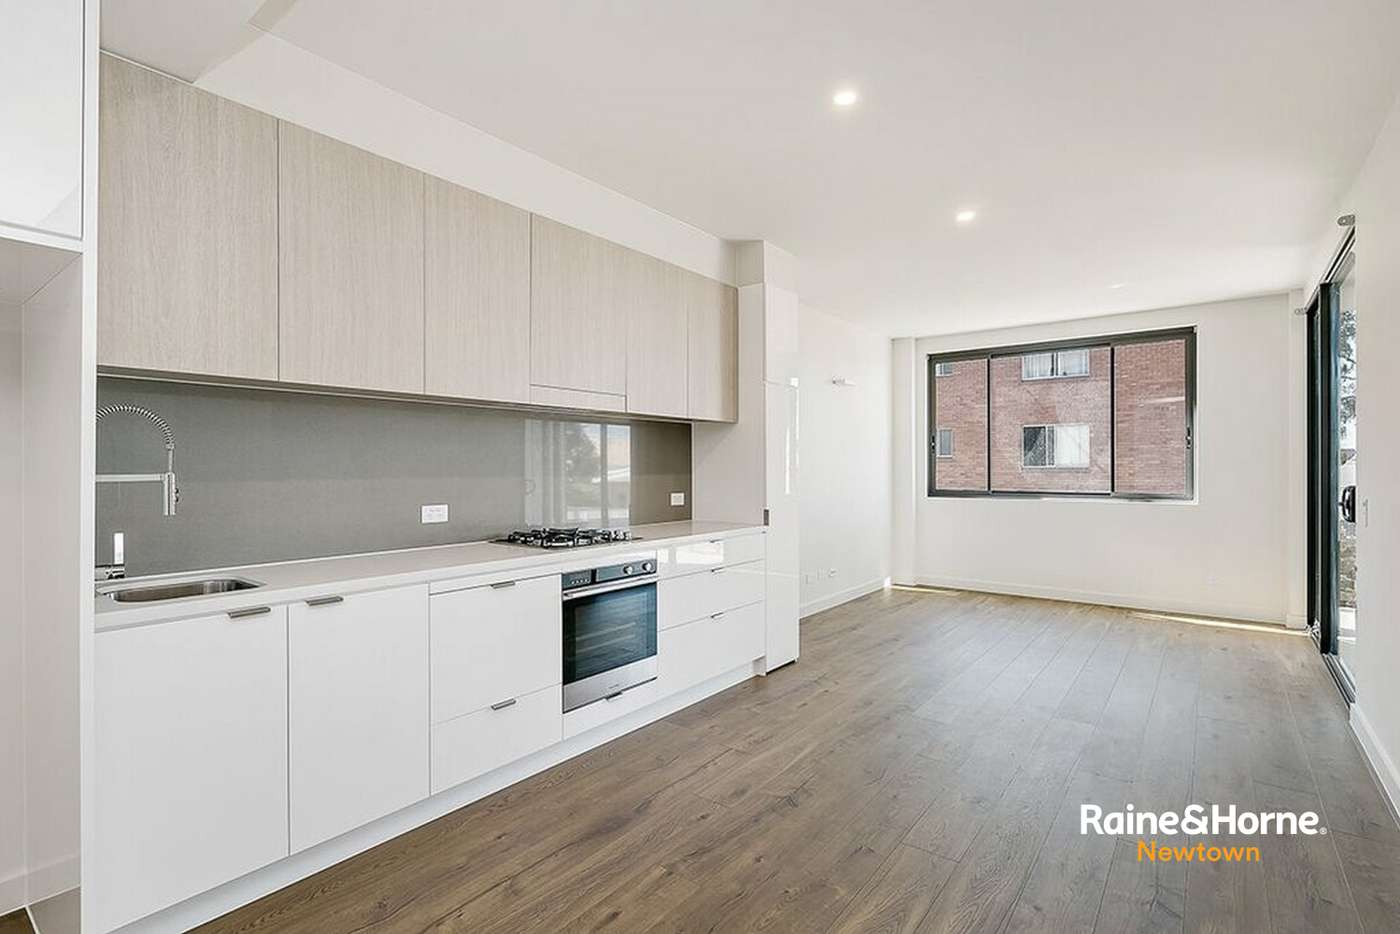 Main view of Homely apartment listing, 15/536A King Street, Newtown NSW 2042